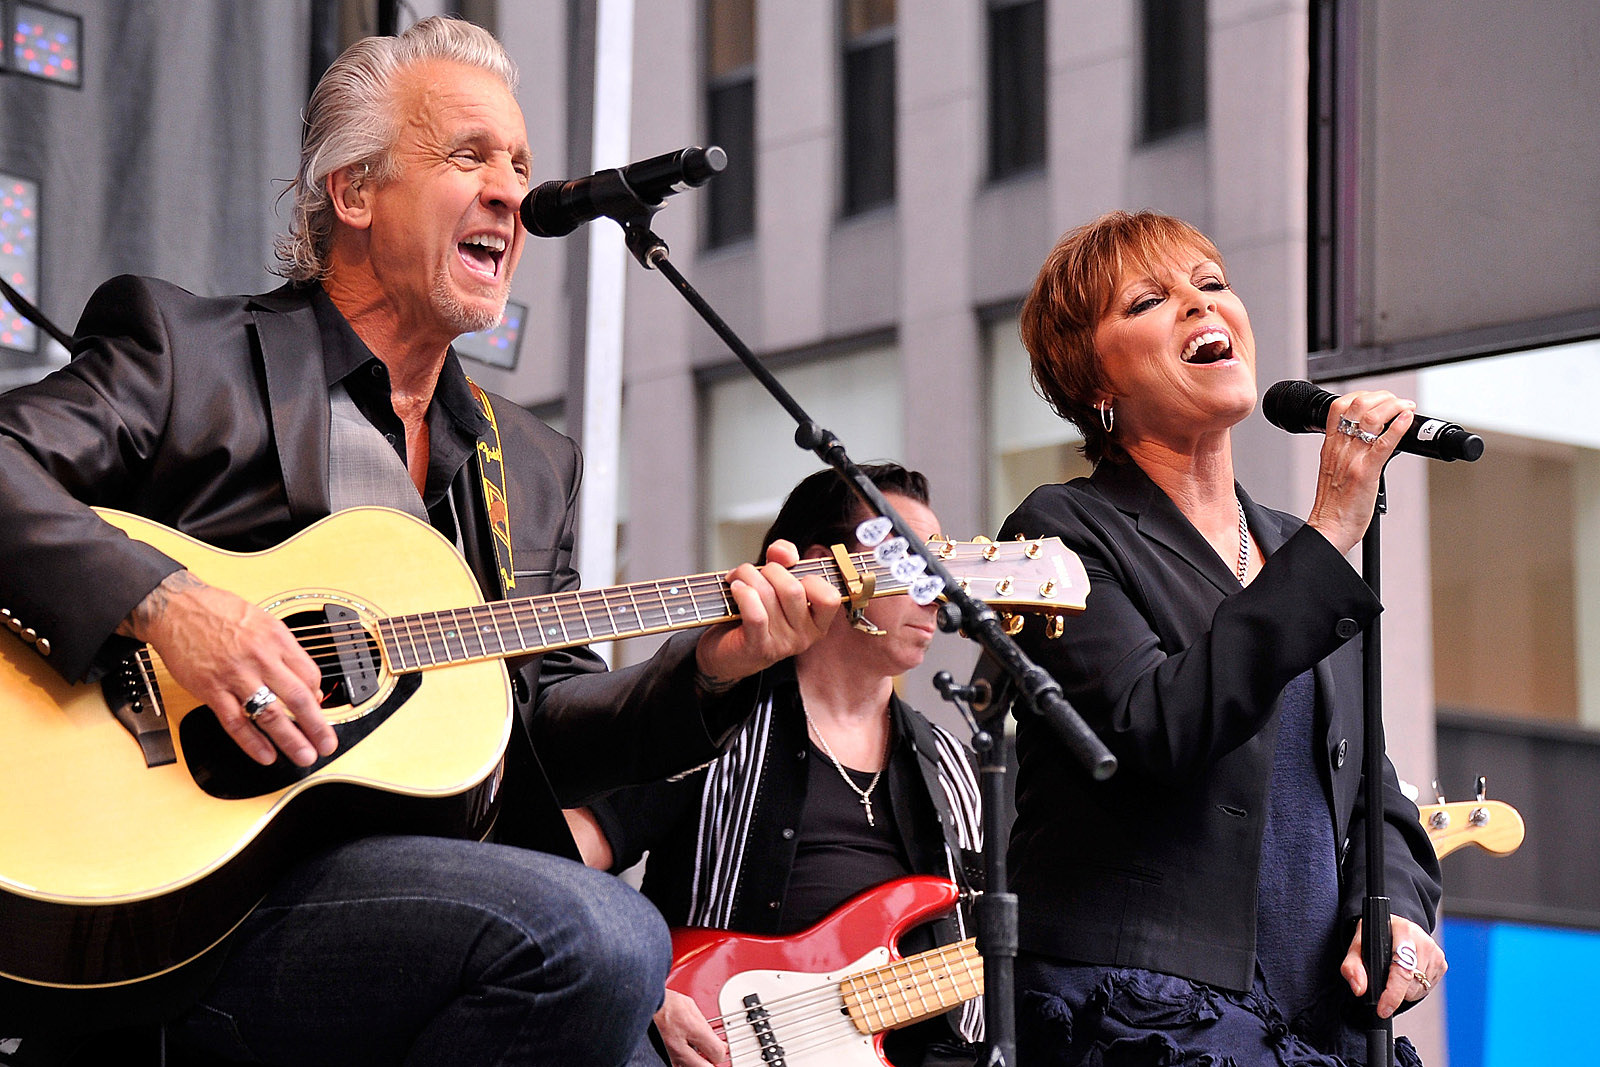 How Pat Benatar and Neil Giraldo Bonded Over Their First Song